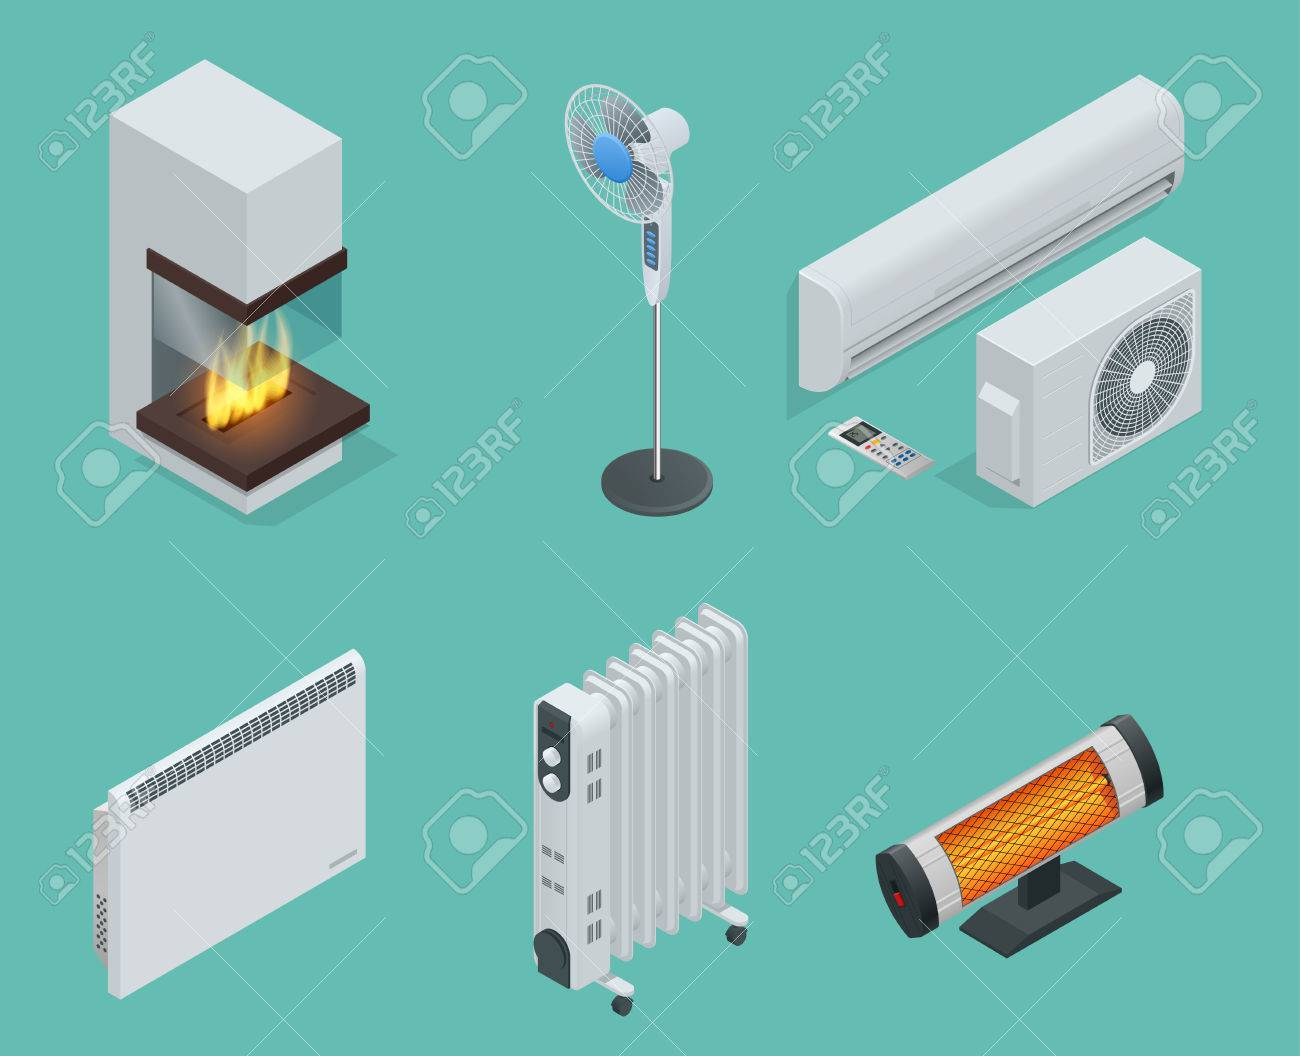 hight resolution of home climate equipment isometric icon set fireplace oil heater with screen controls convector heater